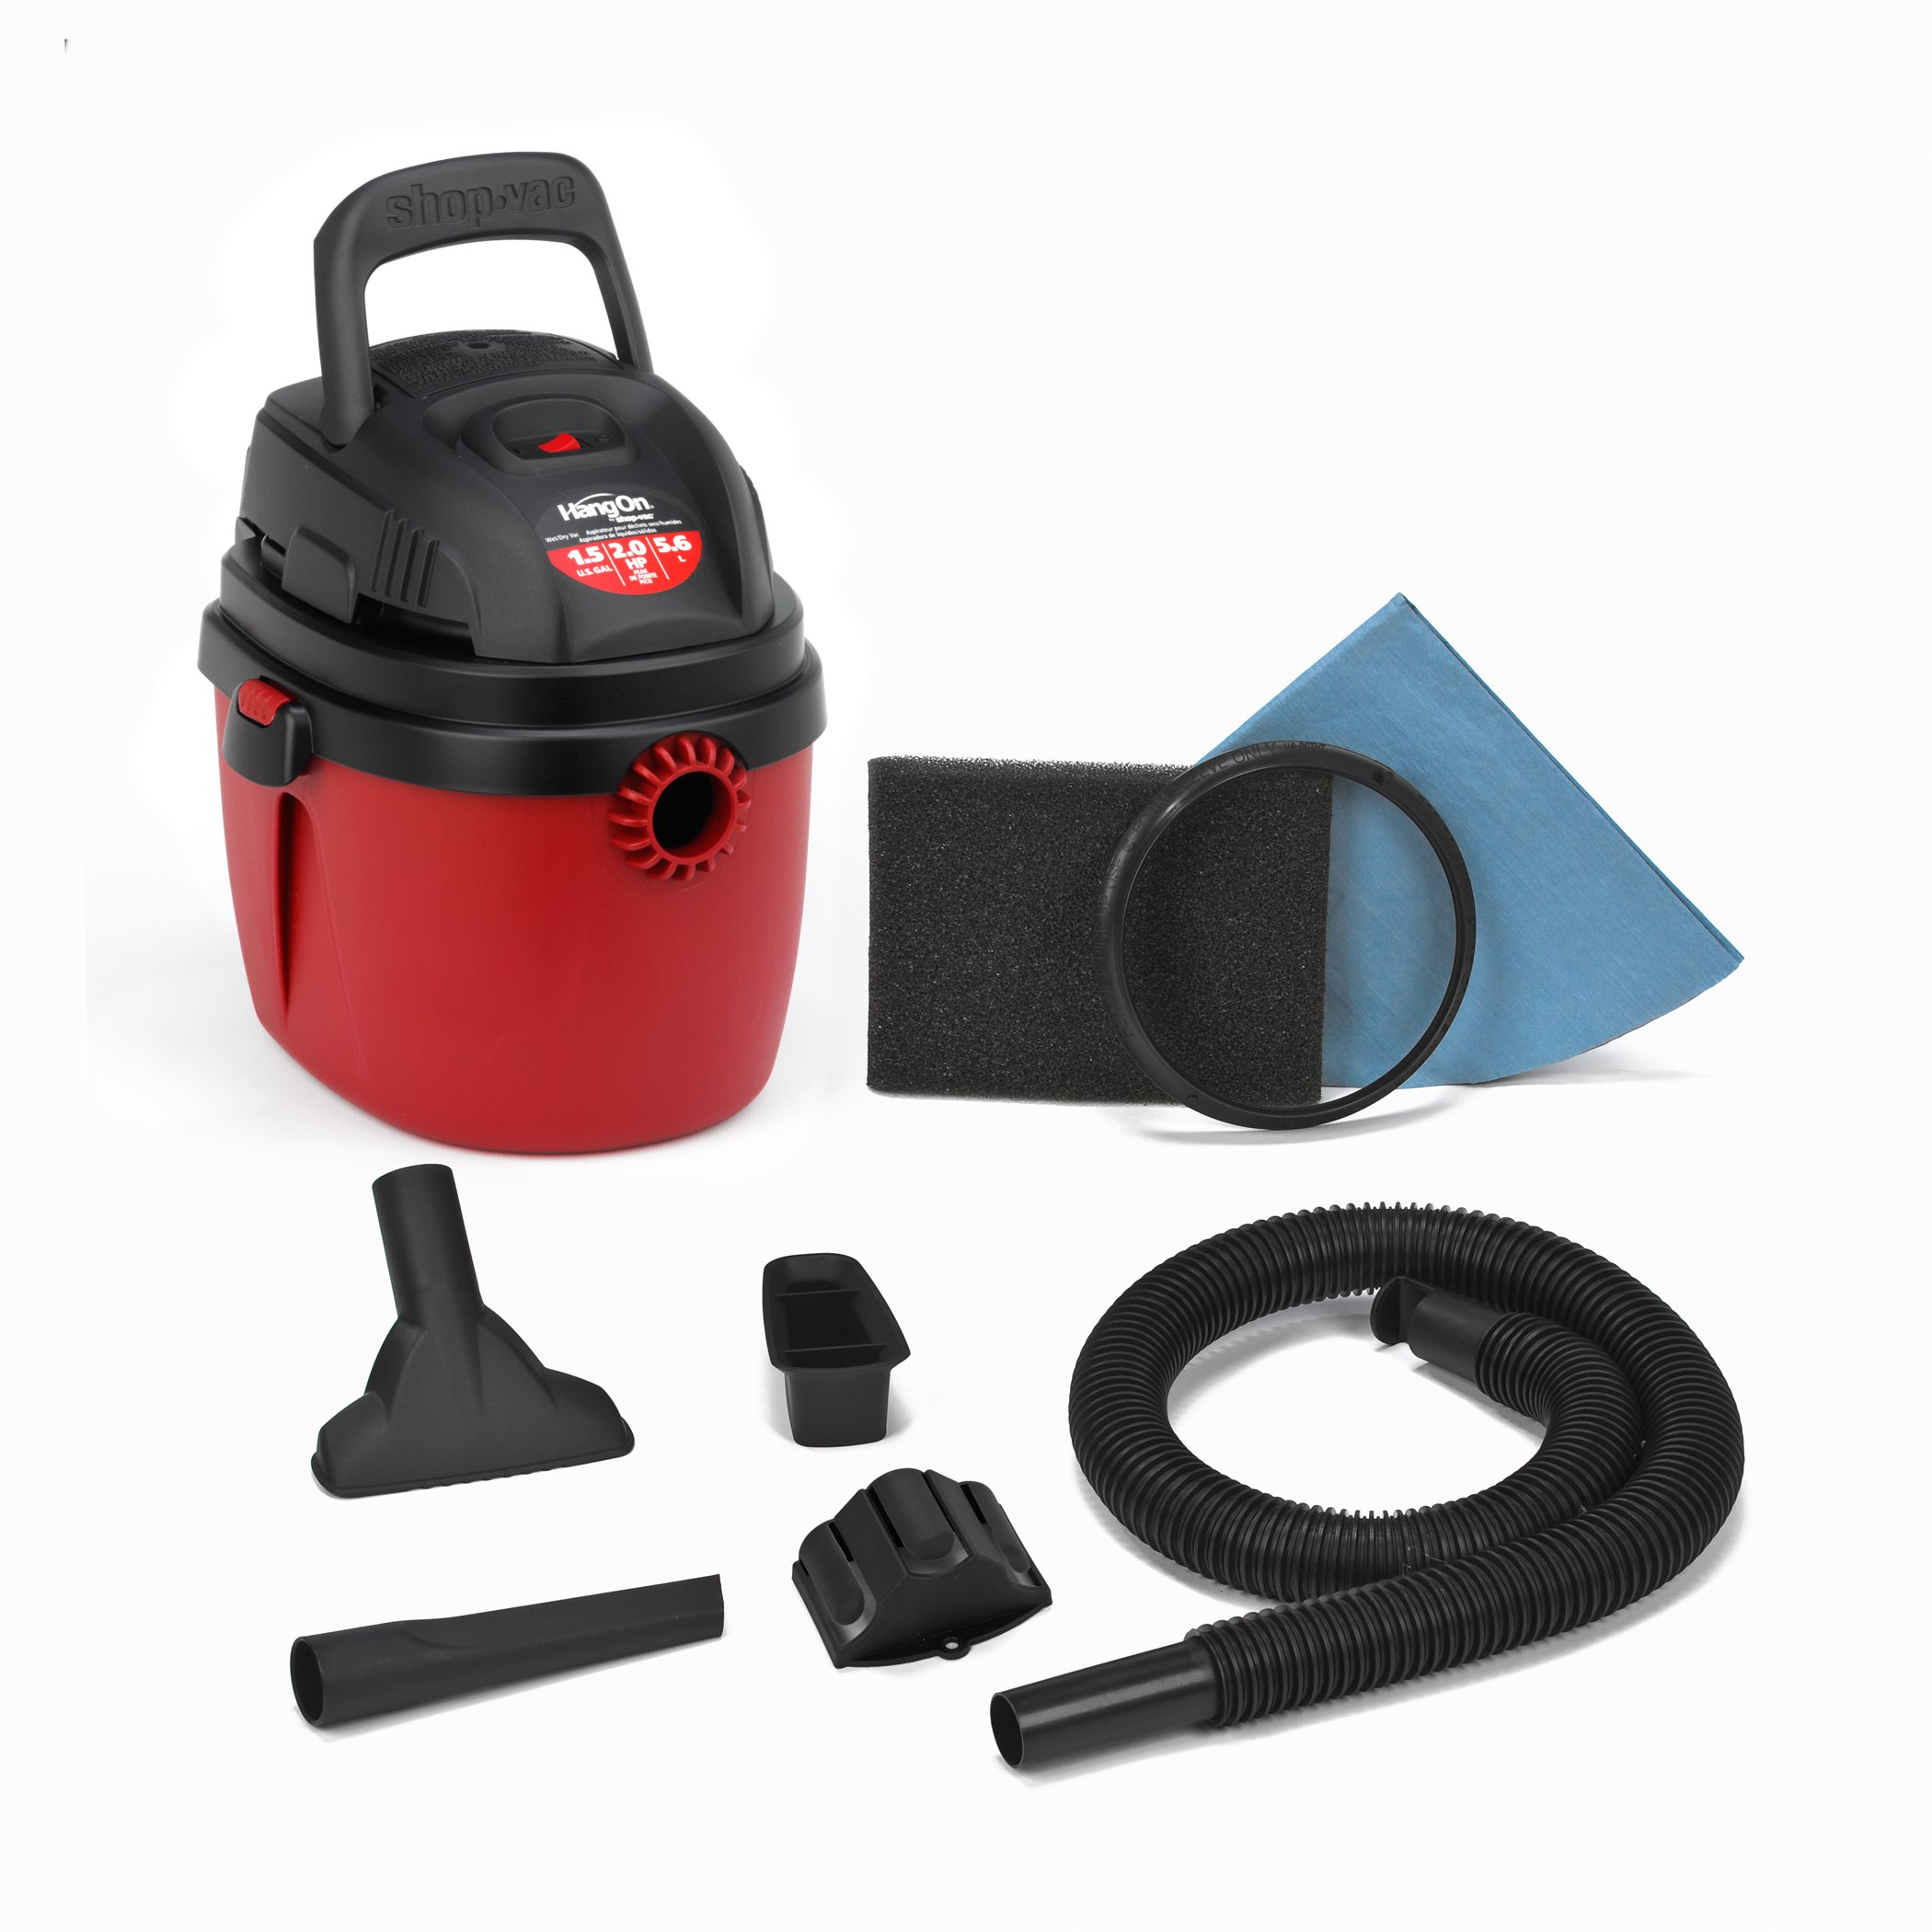 Shop-Vac 2030100 1.5-Gallon 2.0 Peak HP Wet Dry Vacuum, Small, Red/Black by Shop-Vac